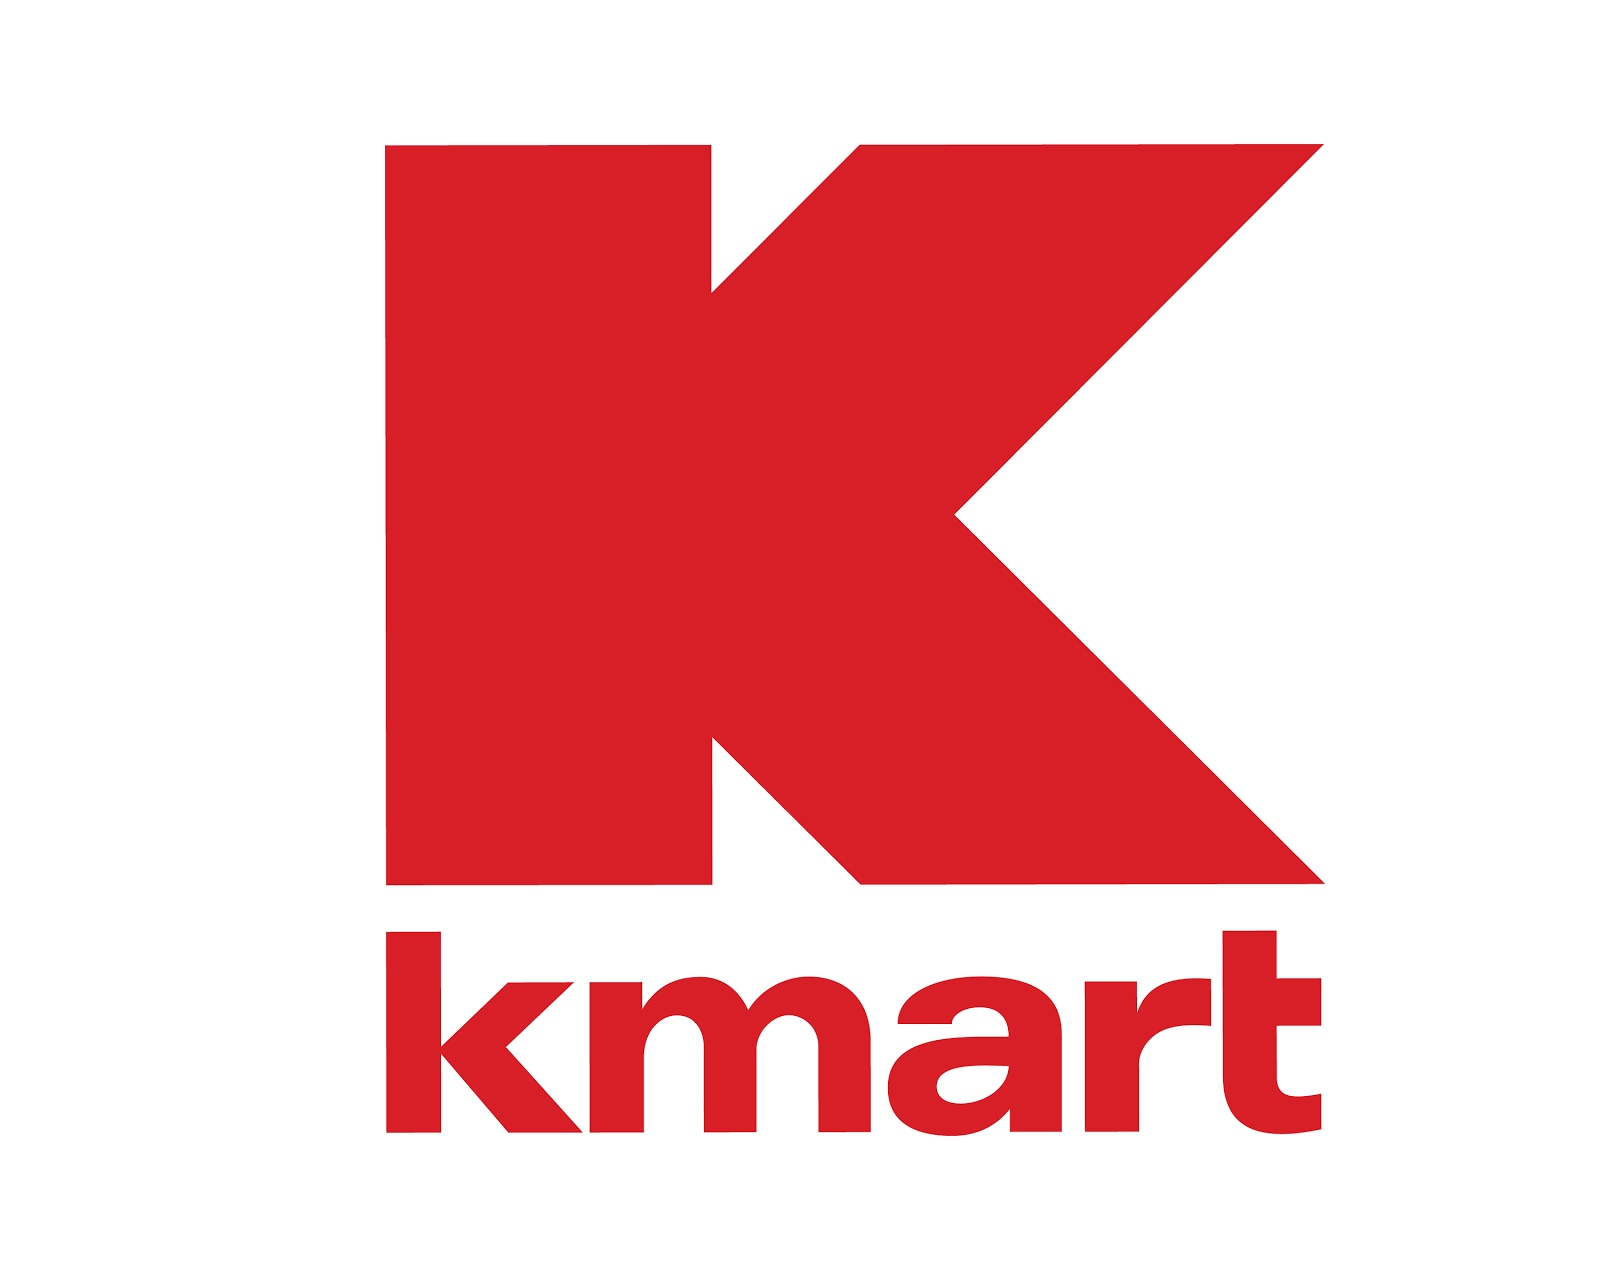 Kmart Up to 40% Off Patio Furniture